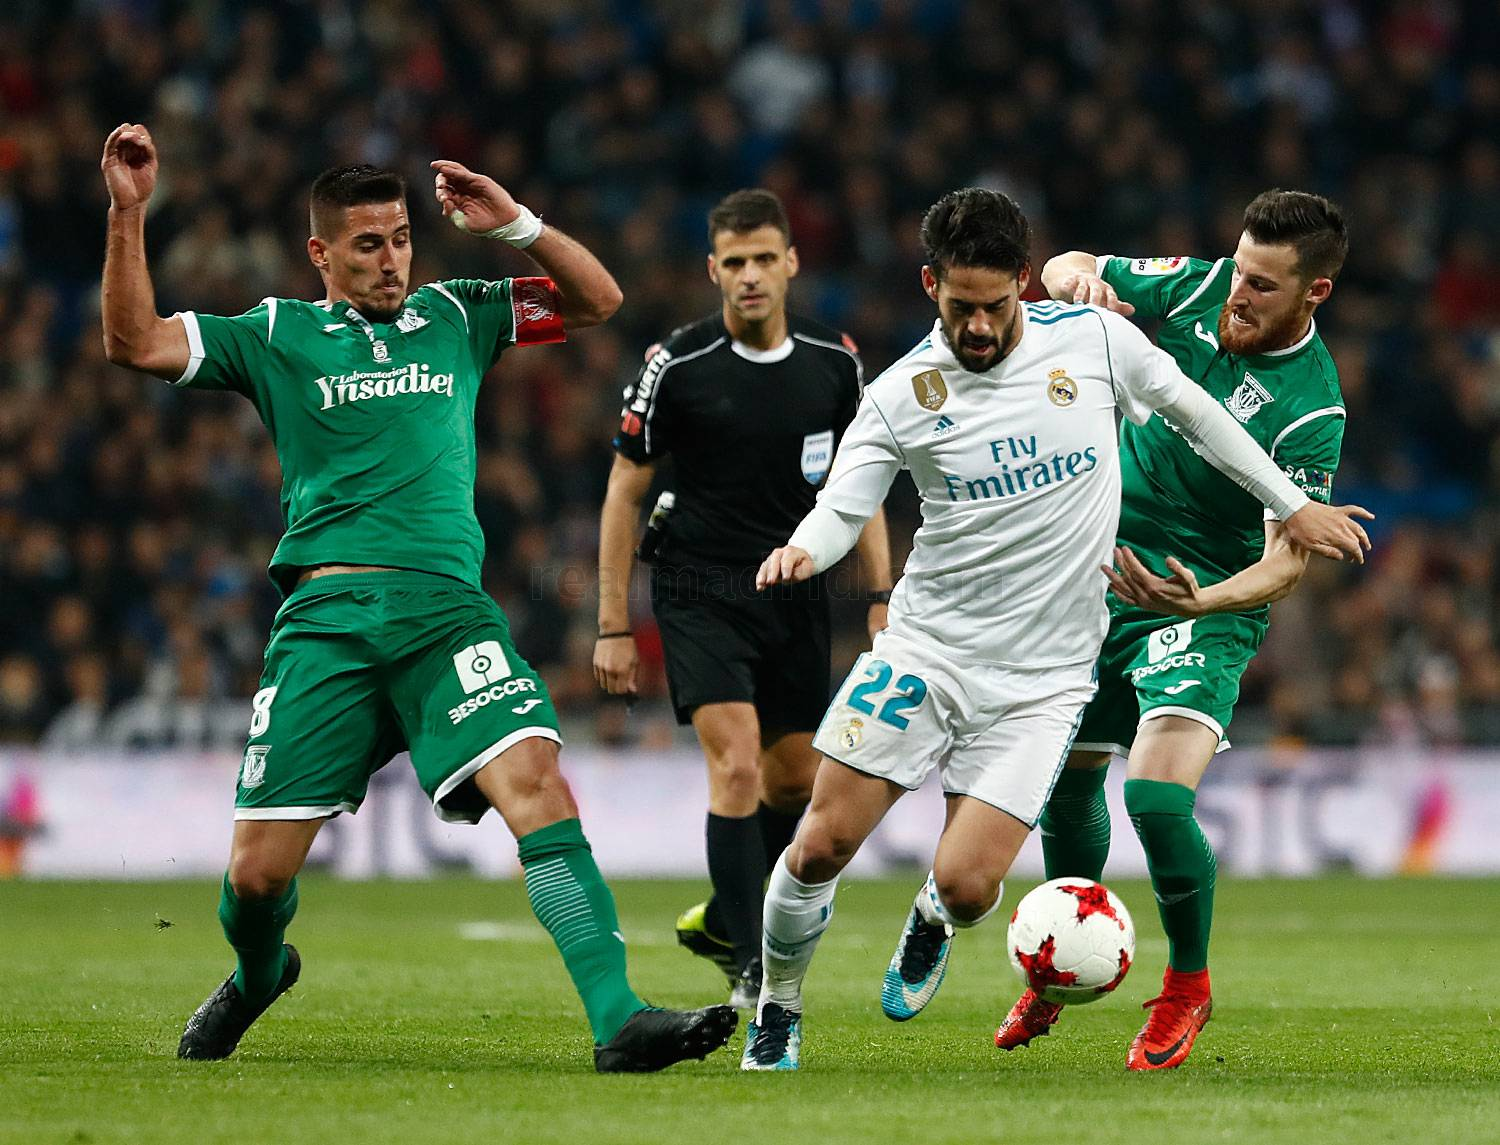 Real Madrid - Real Madrid - Leganés - 24-01-2018